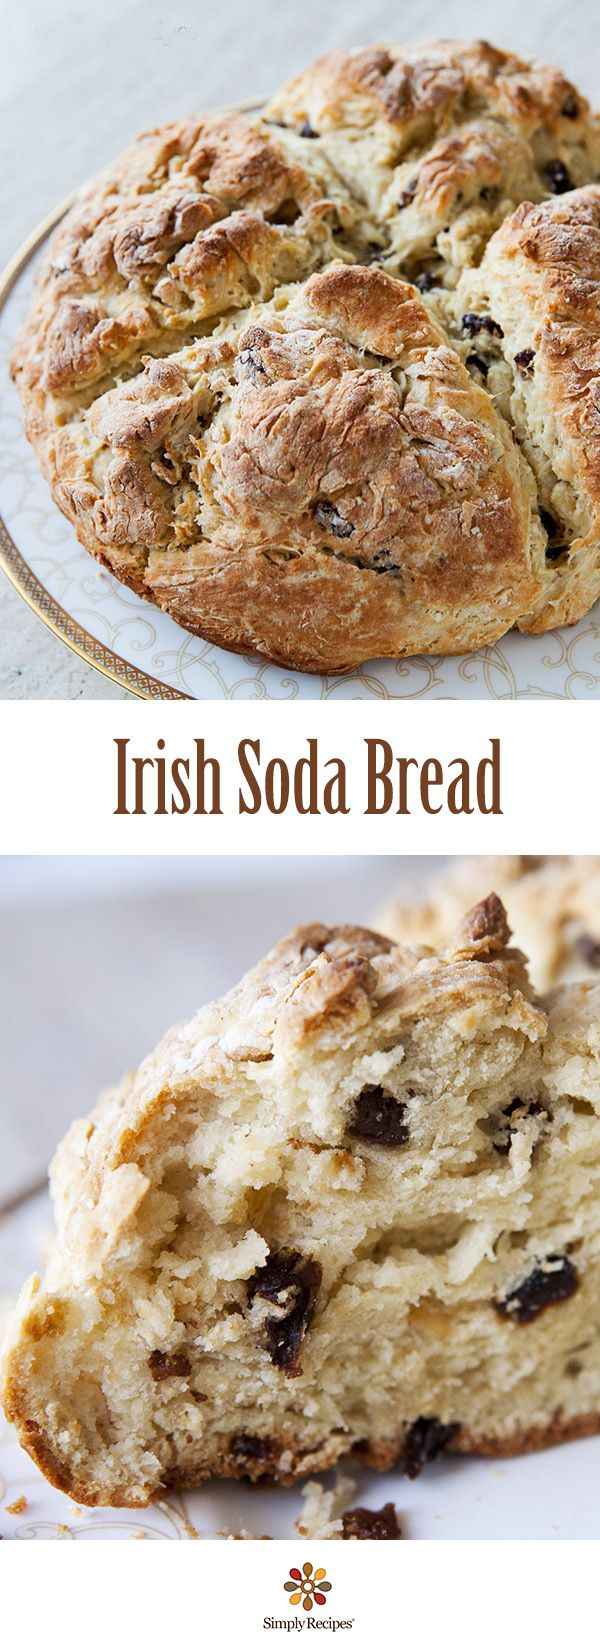 Irish Soda Bread Recipe Simplyrecipes Com Recipe Soda Bread Irish Soda Bread Recipe Irish Recipes